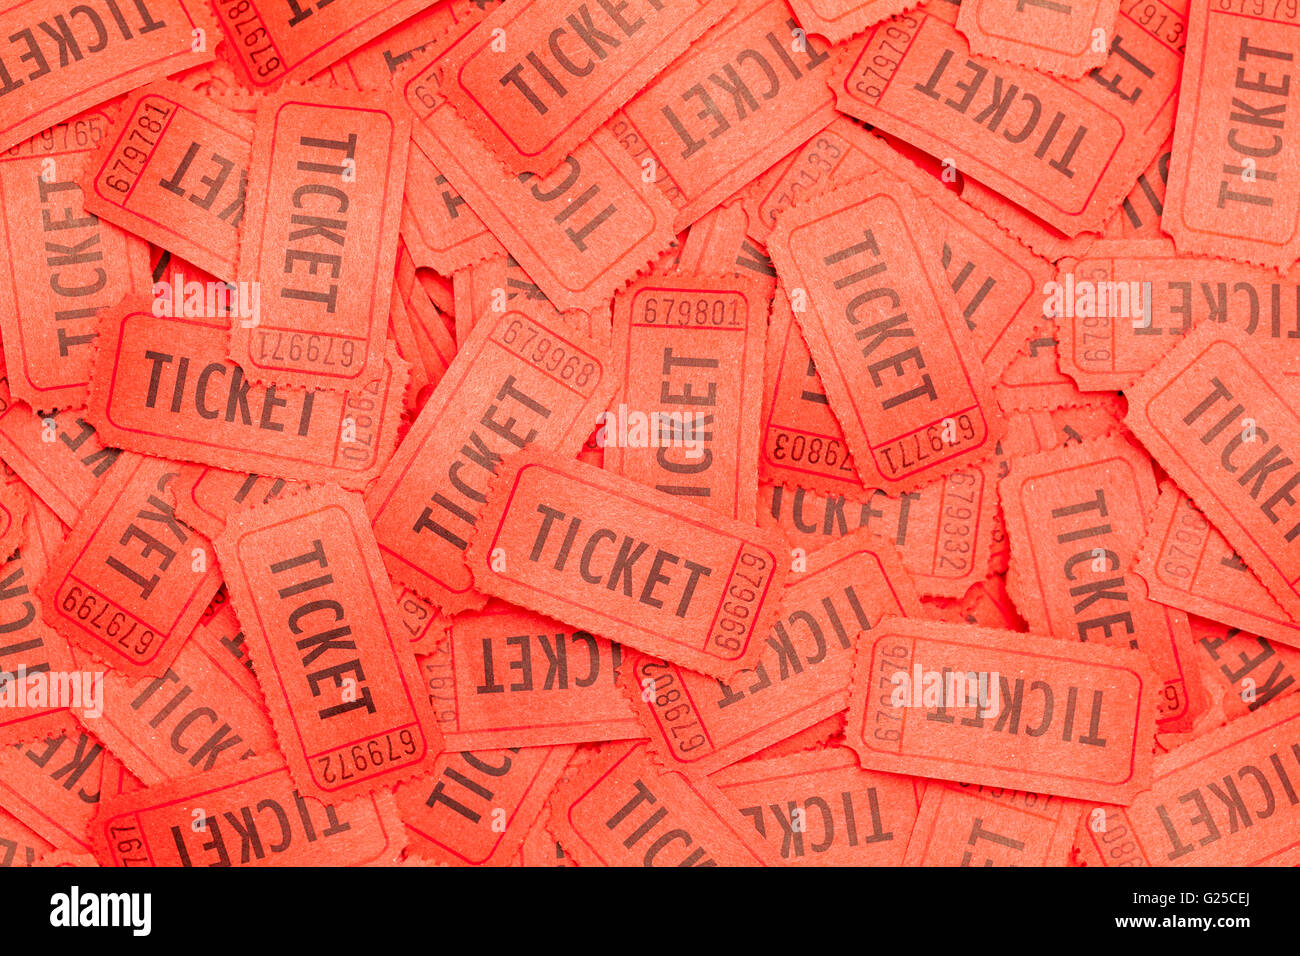 Large Pile of Messy Red Tickets Scattered About. - Stock Image